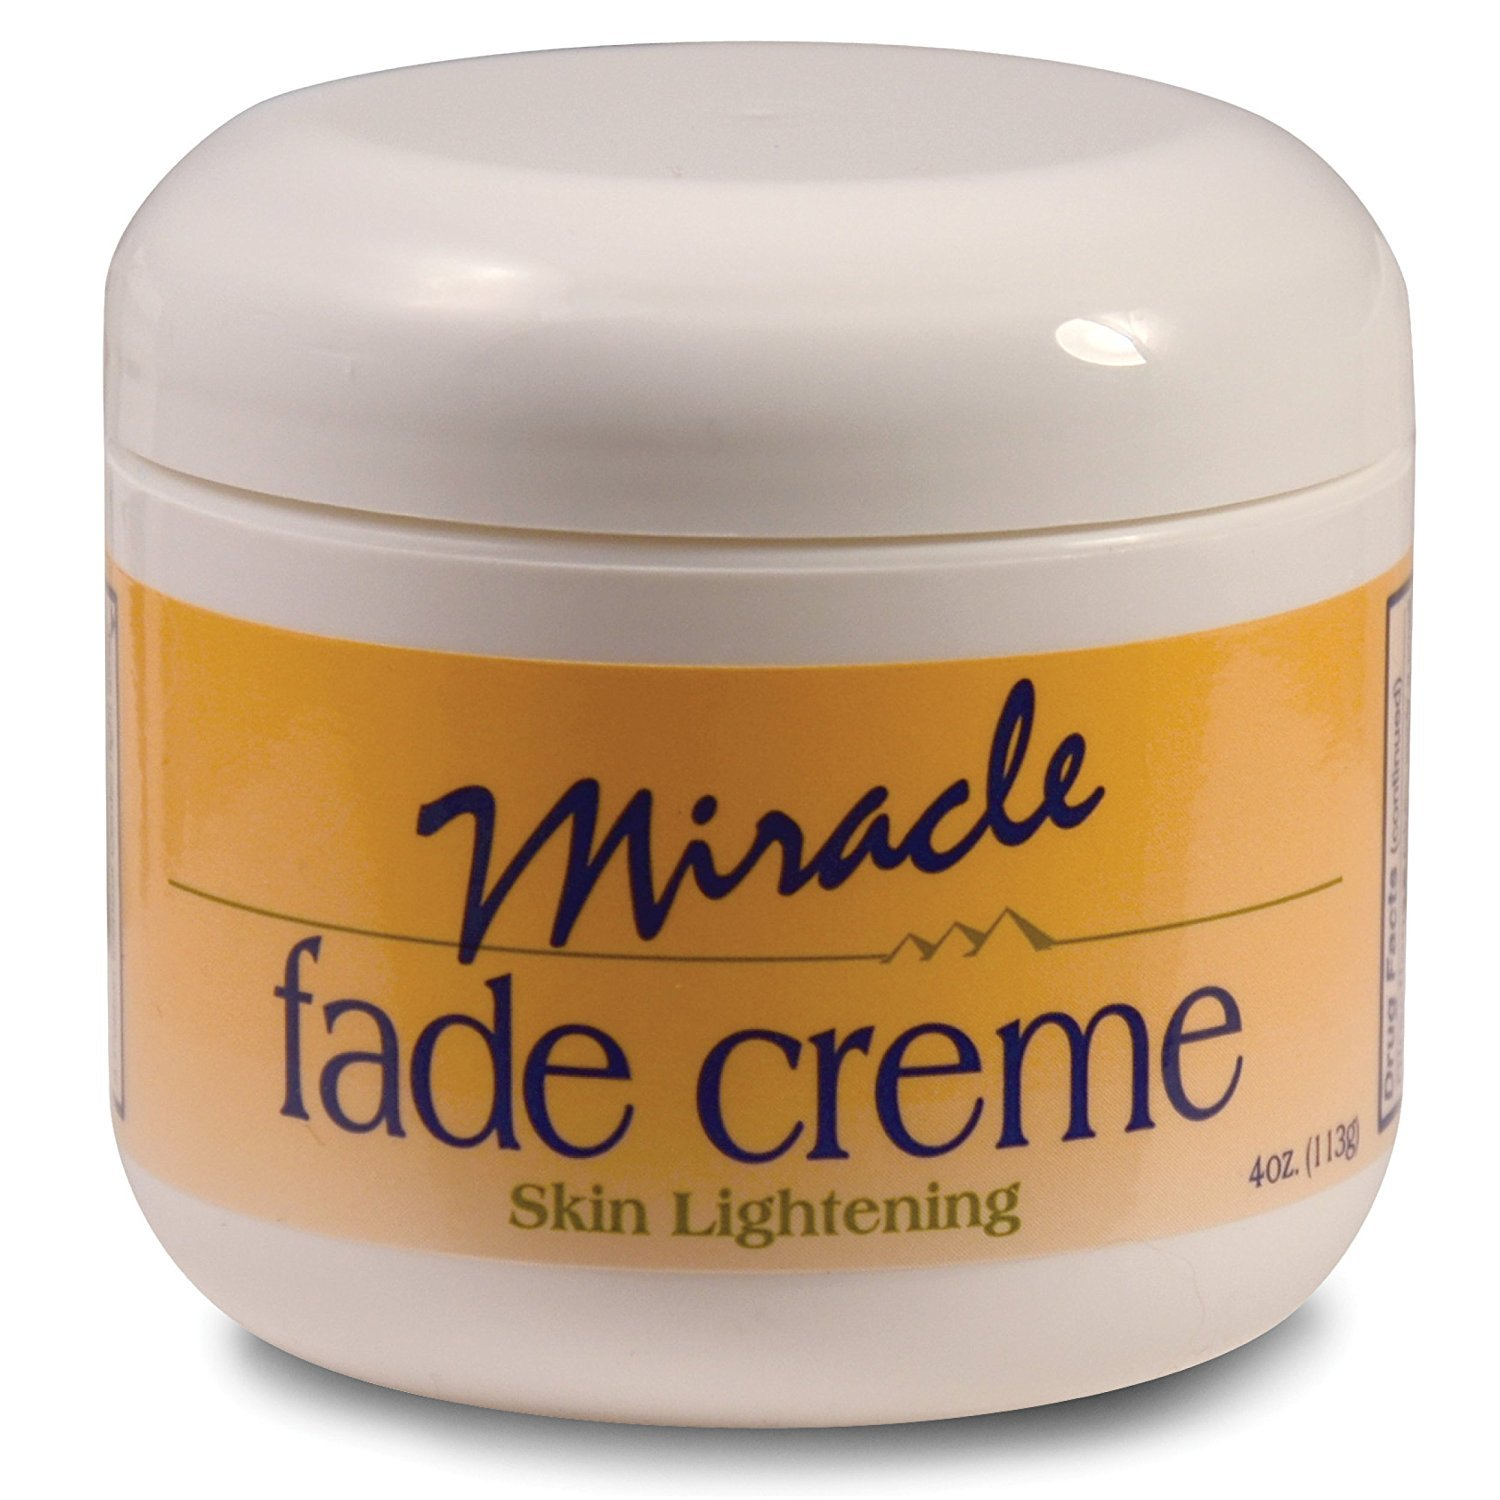 Miracle Fade Skin Lightening Cream. Natural Whitening Ingredients Lighten Dark Spots, Removes Discoloration without Bleaching skin around + Reduces Hyperpigmentation and Melasma + For Face and Body.